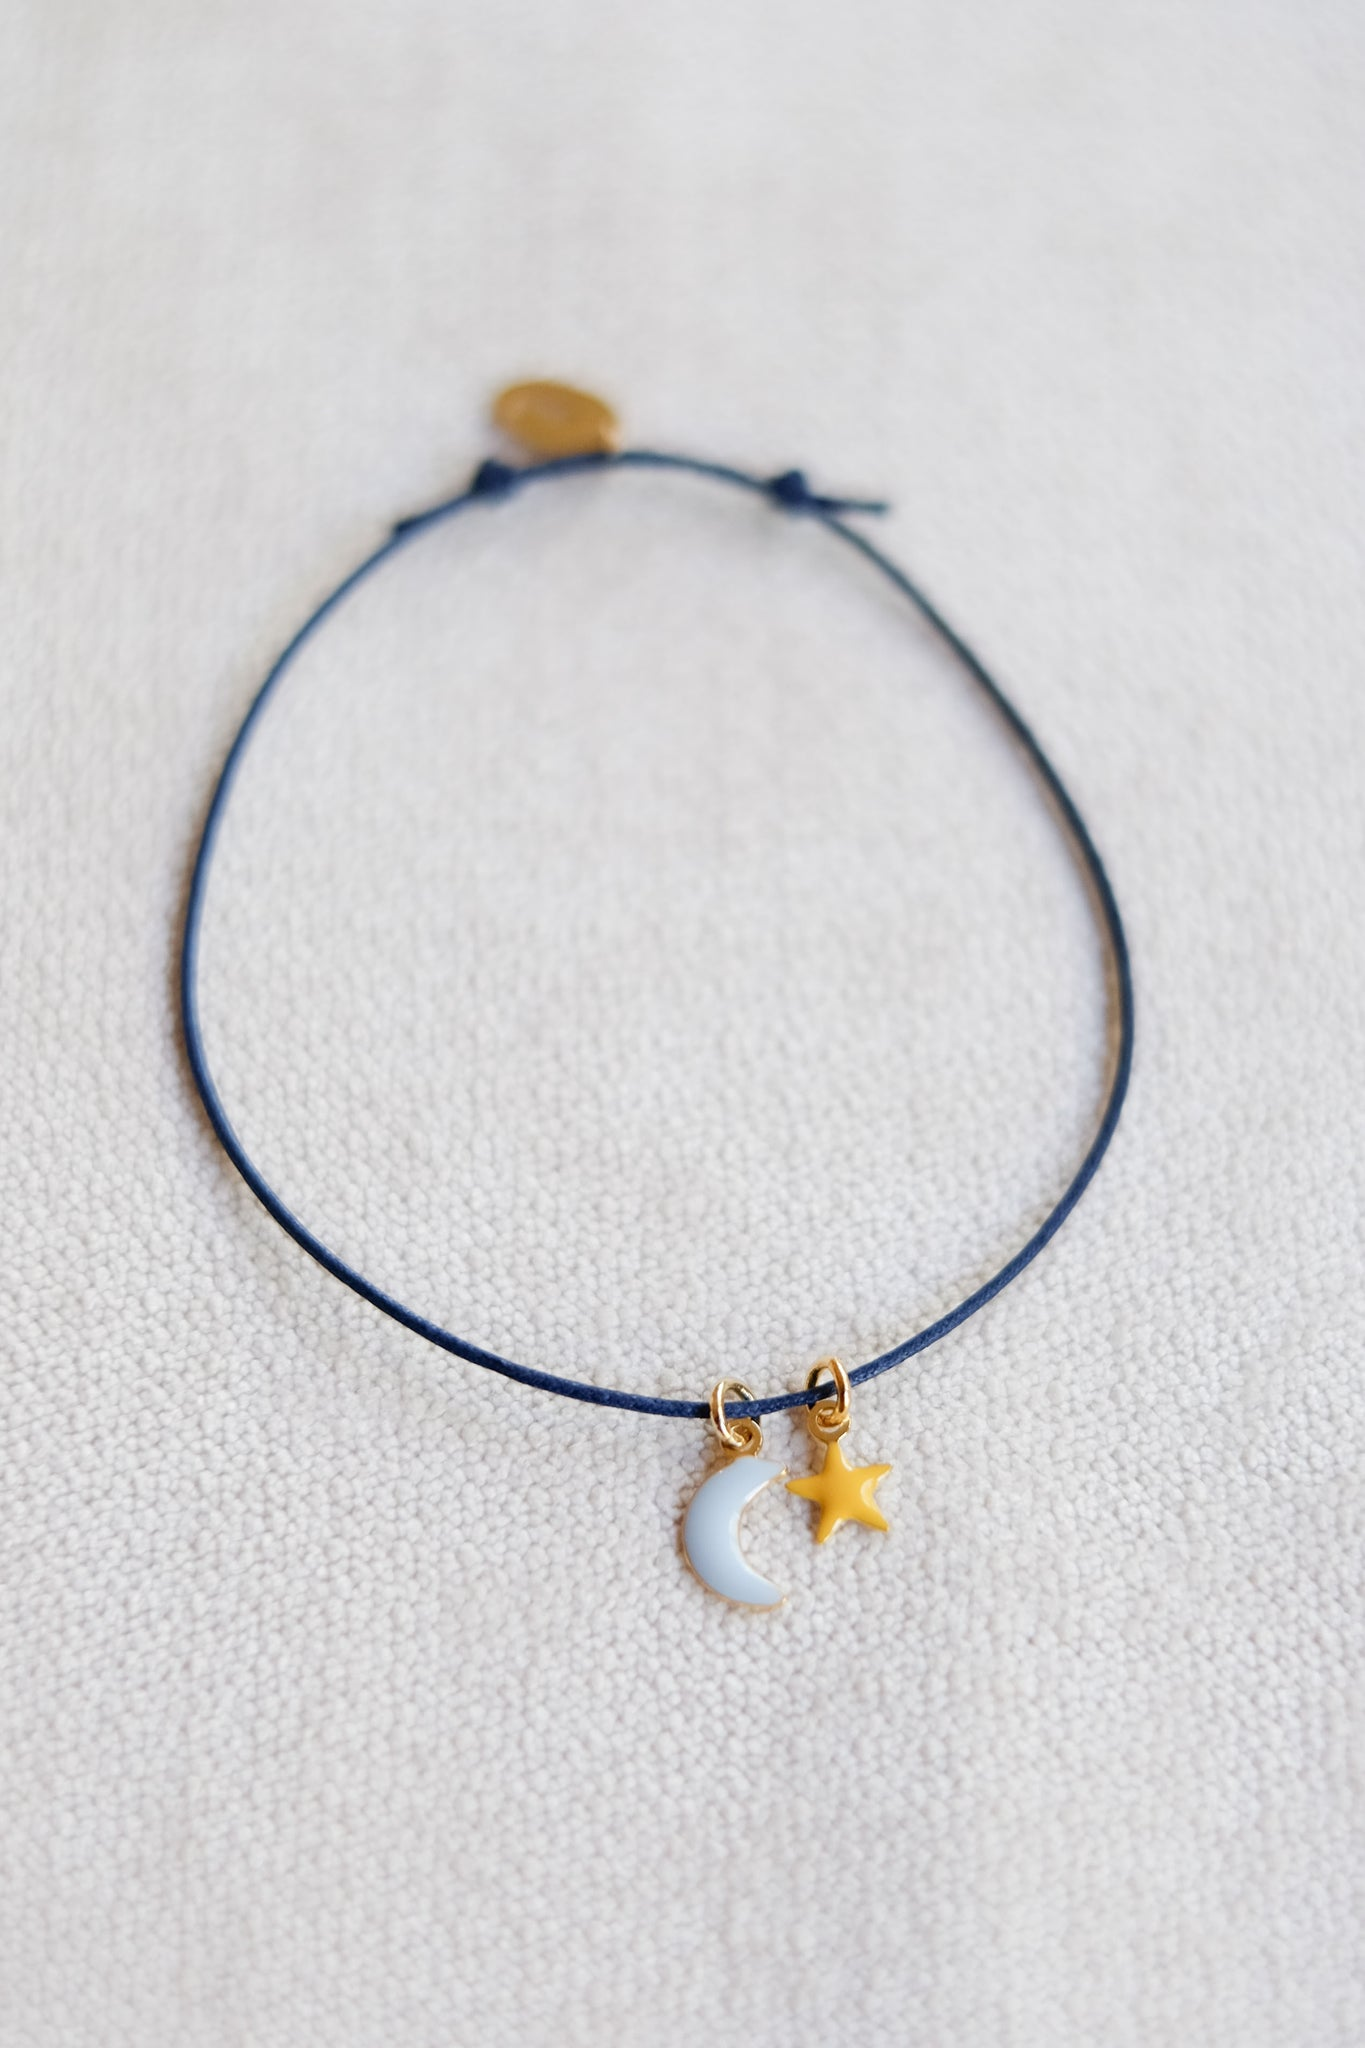 Titlee :: Moonlight Bracelet